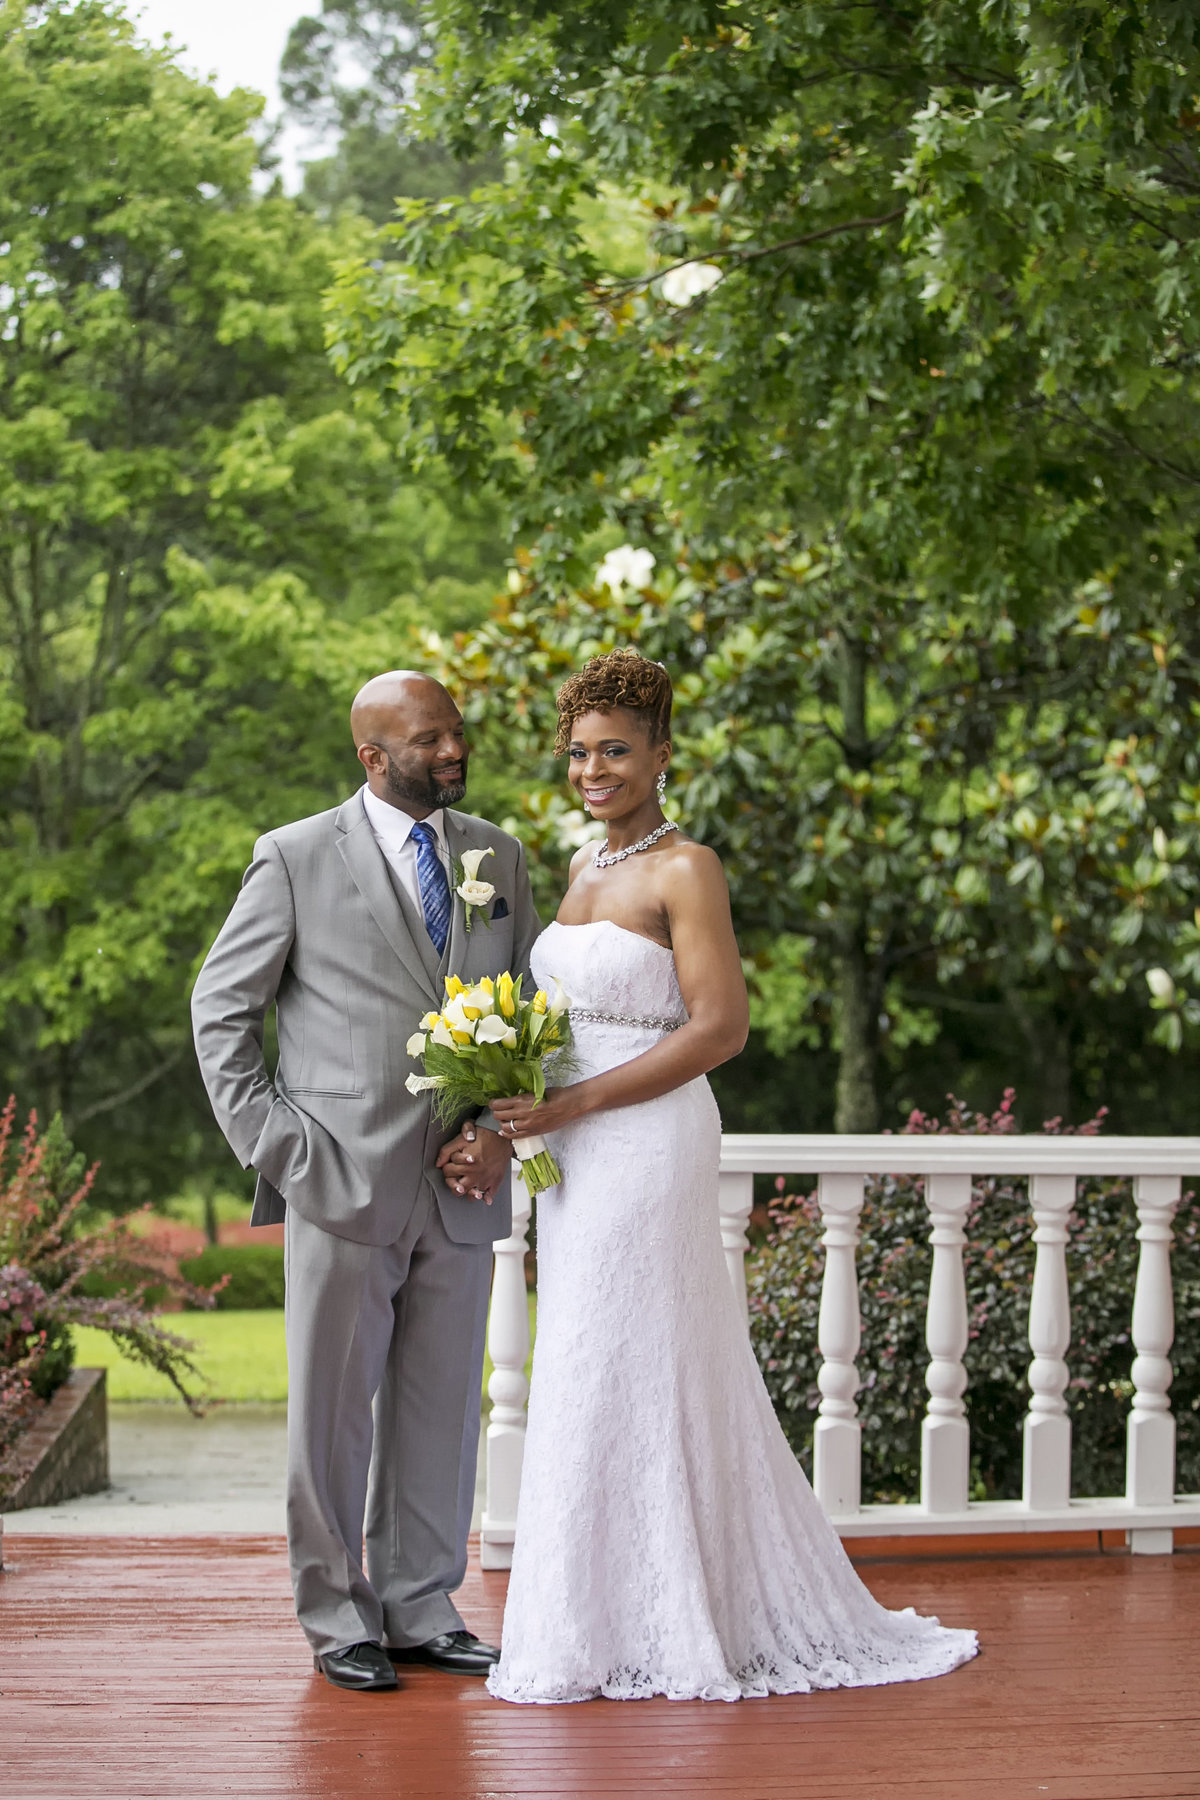 Raleigh Wedding at Gardens at Millbrook